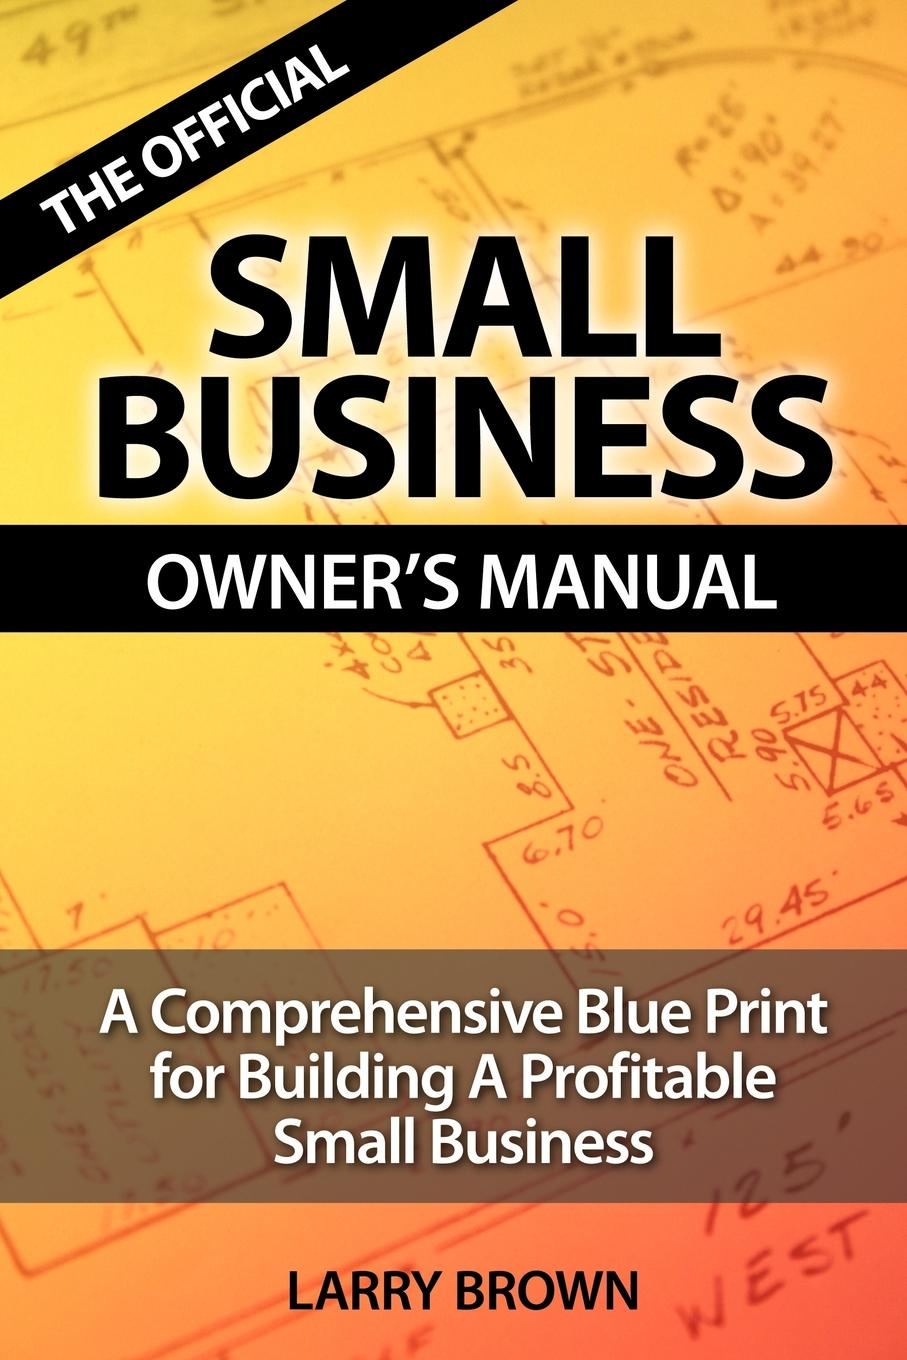 Фото - LARRY BROWN THE OFFICIAL SMALL BUSINESS OWNERS MANUAL agent based snort in distributed environment